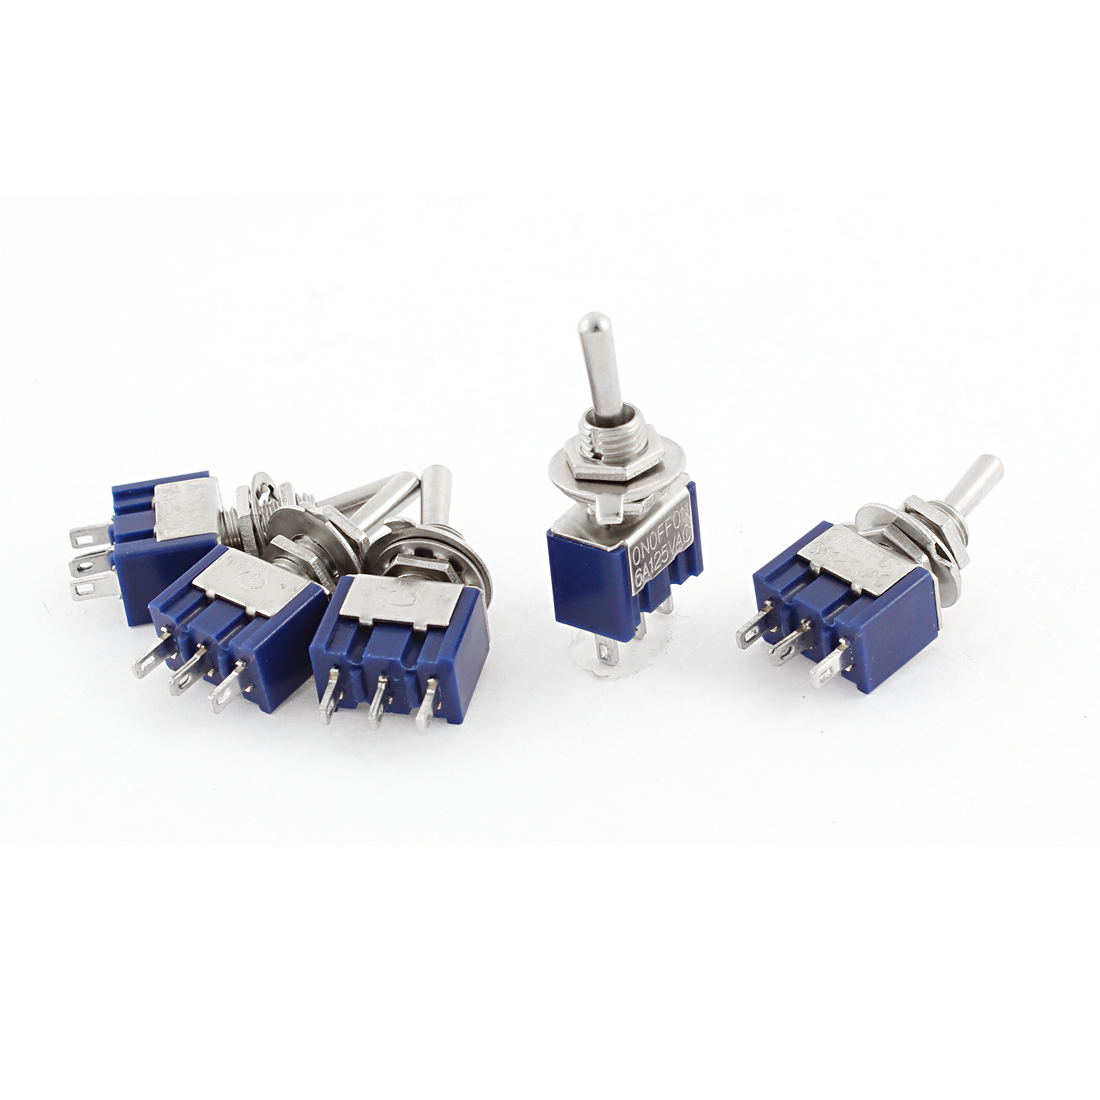 AC125V 6A SPDT 3 Terminals ON-OFF-ON 3 Positions Toggle Switch 5PCS